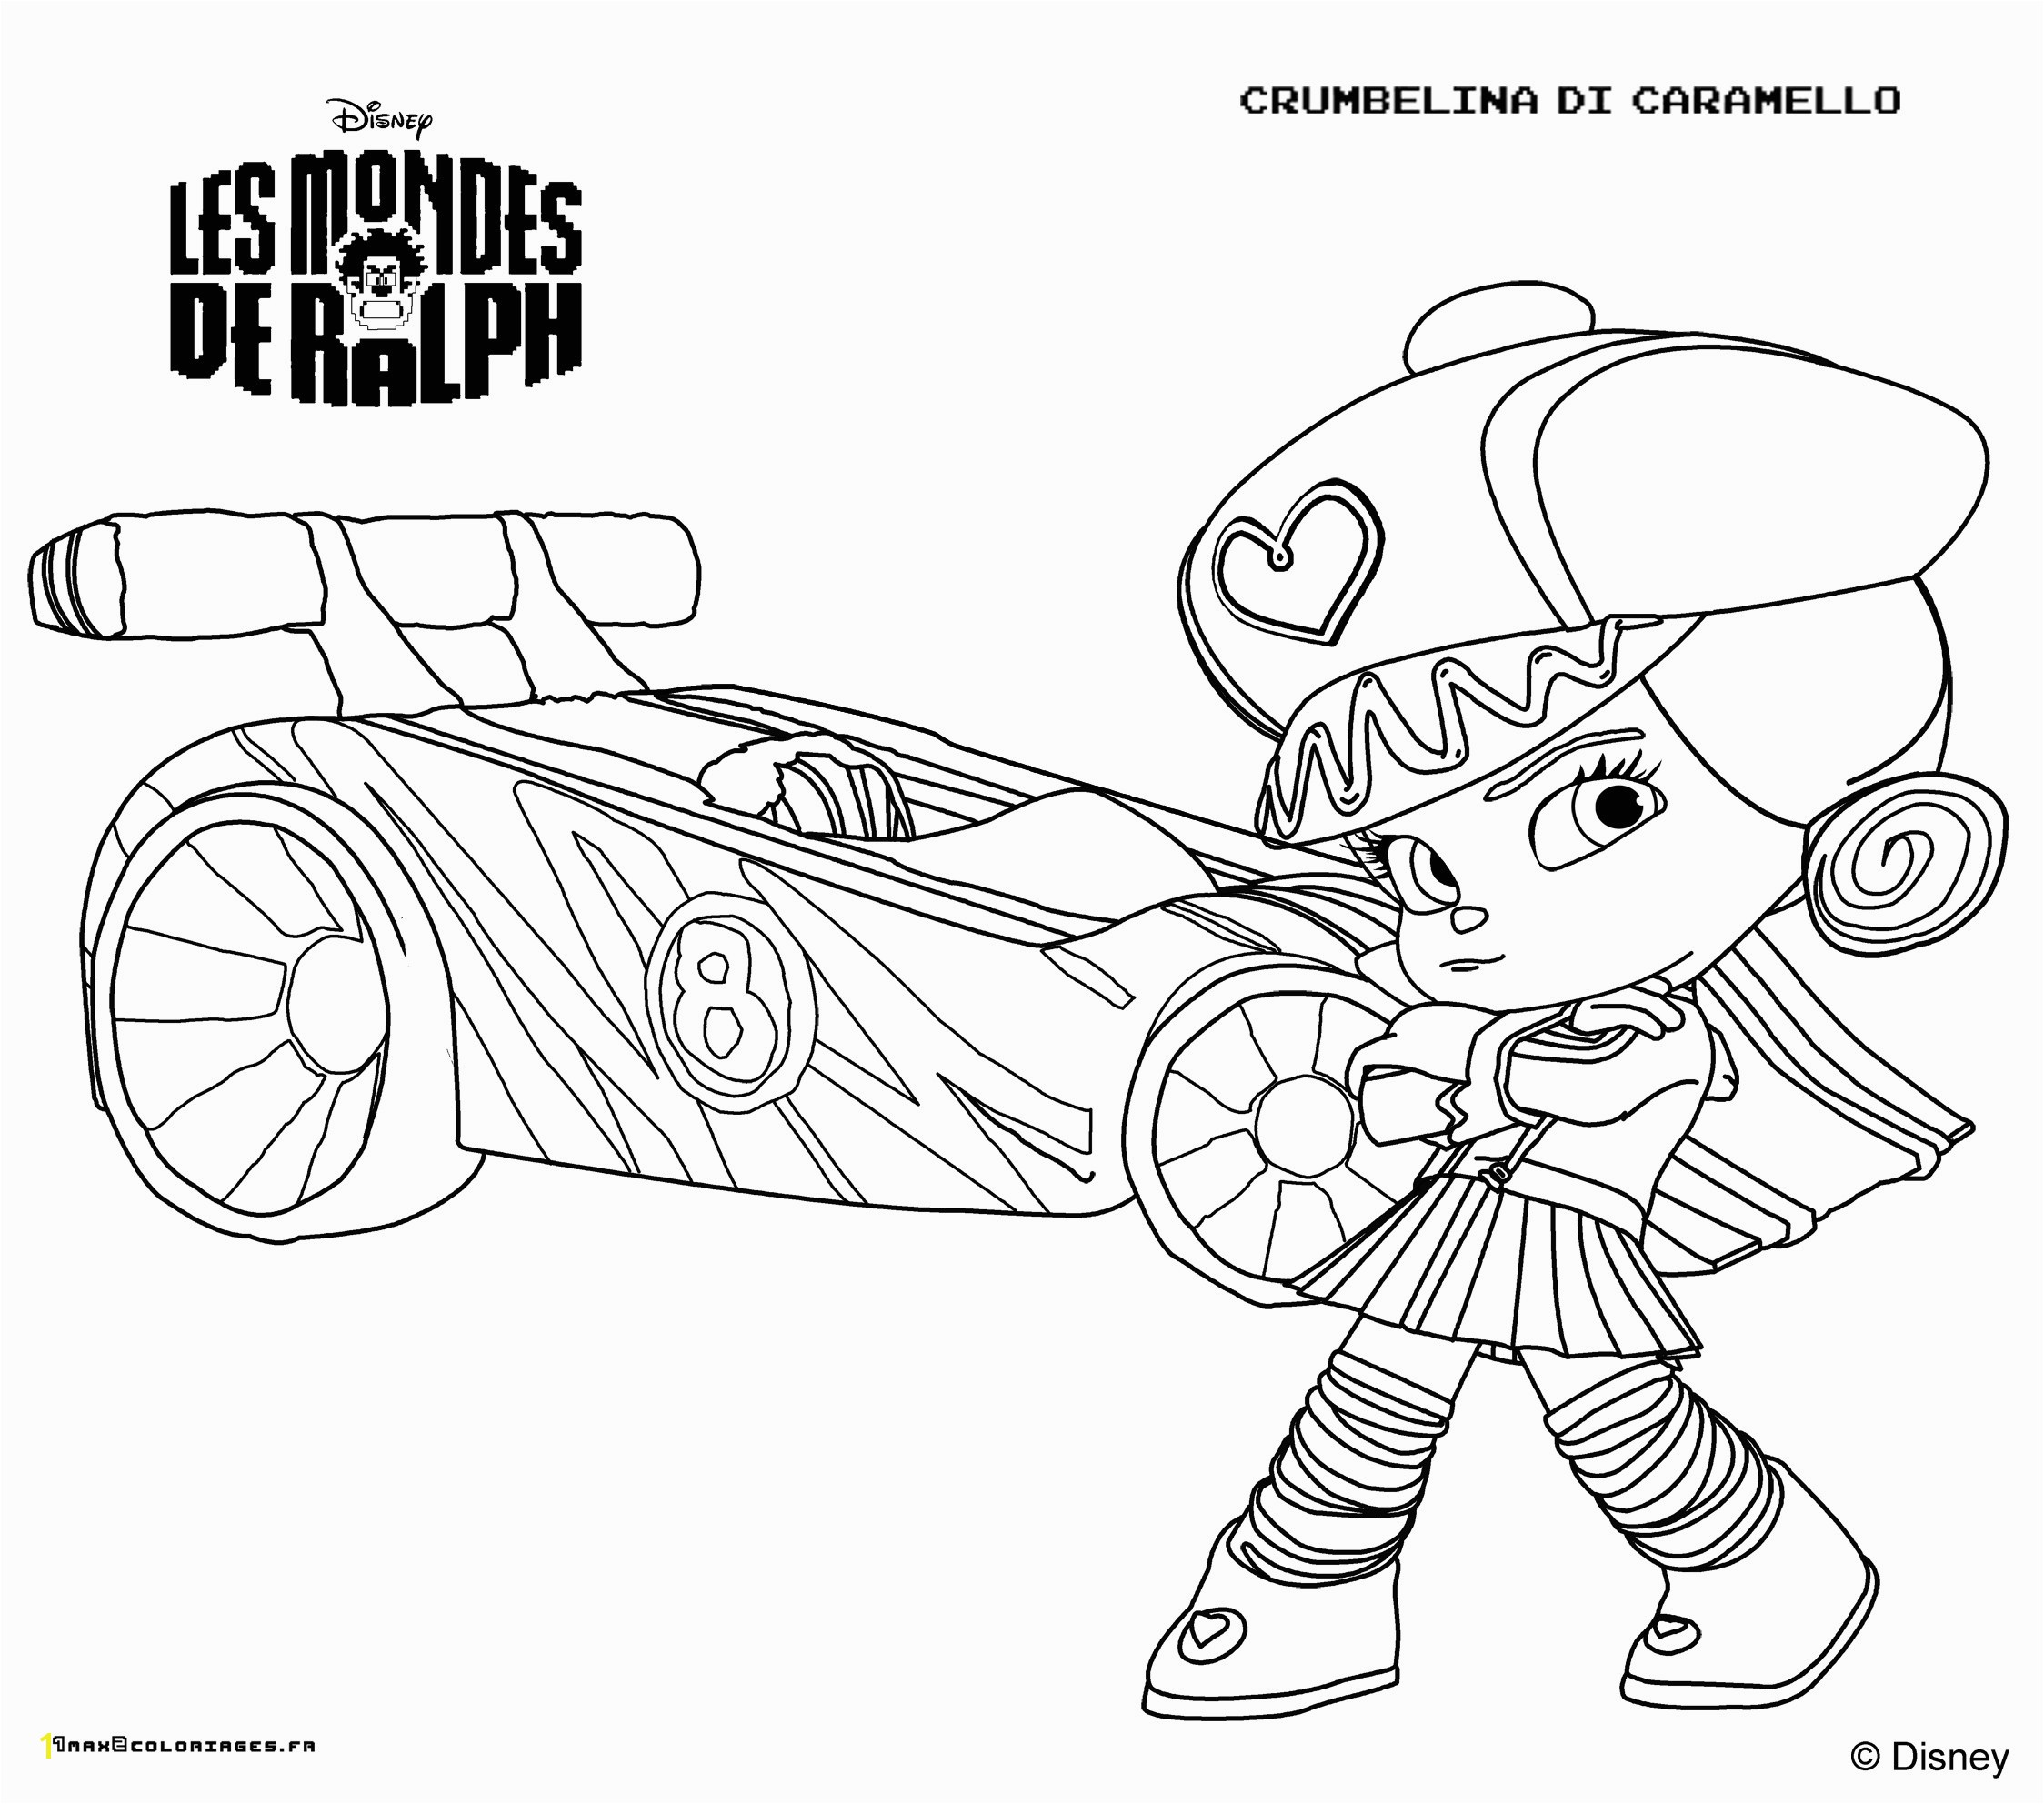 Disney Thanksgiving Coloring Pages Awesome Cool Coloring Page Unique Witch Coloring Pages New Crayola Pages 0d Image